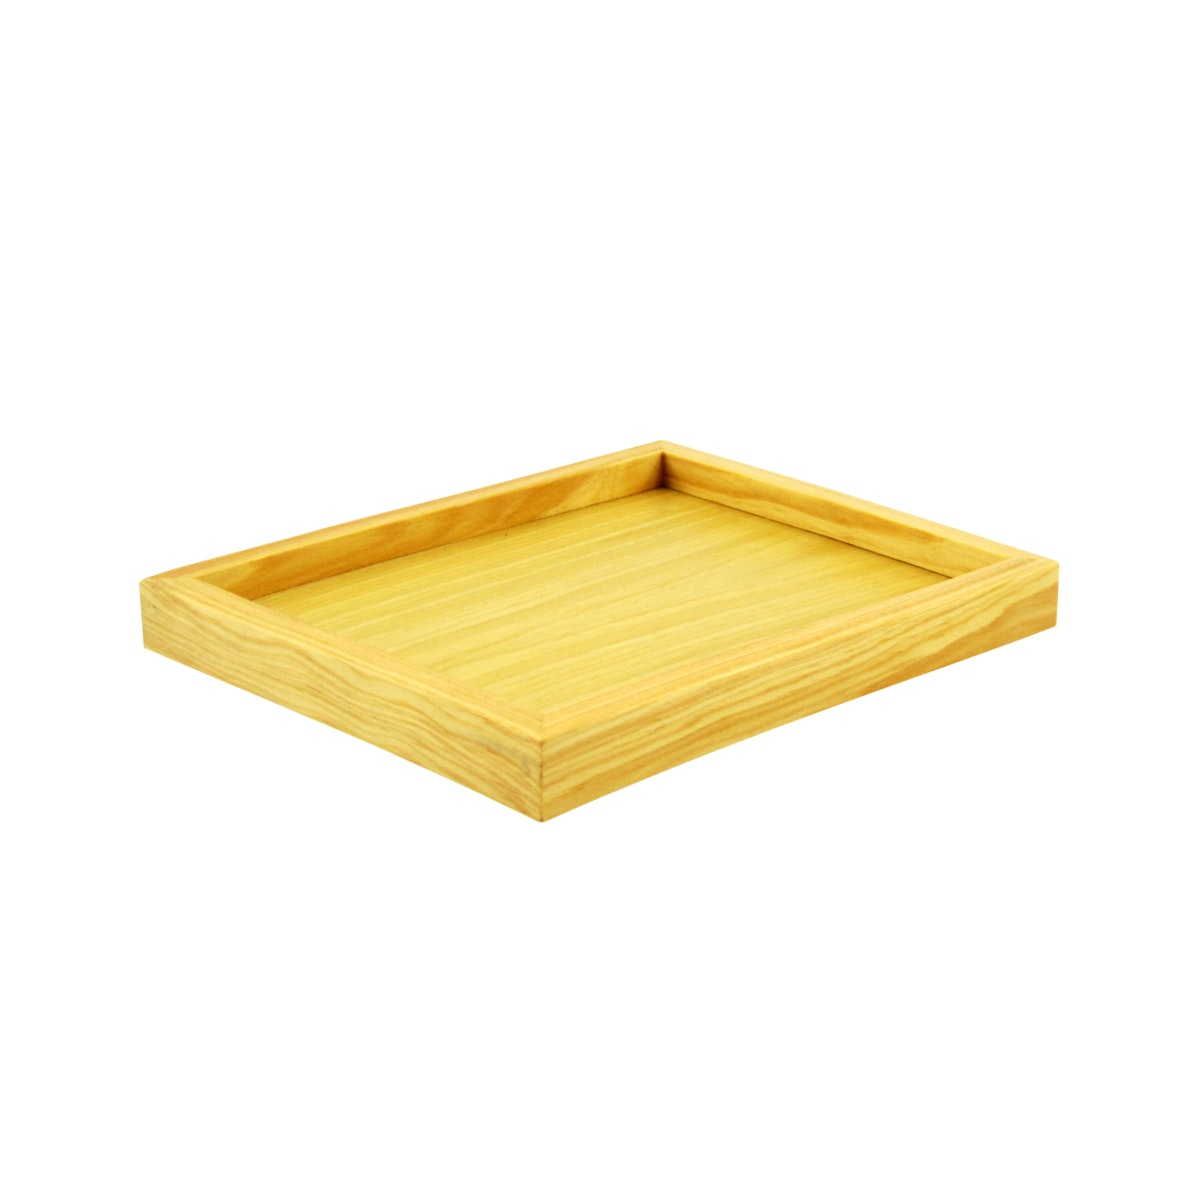 Izemu New Kayo, Multipurpose Tray Small